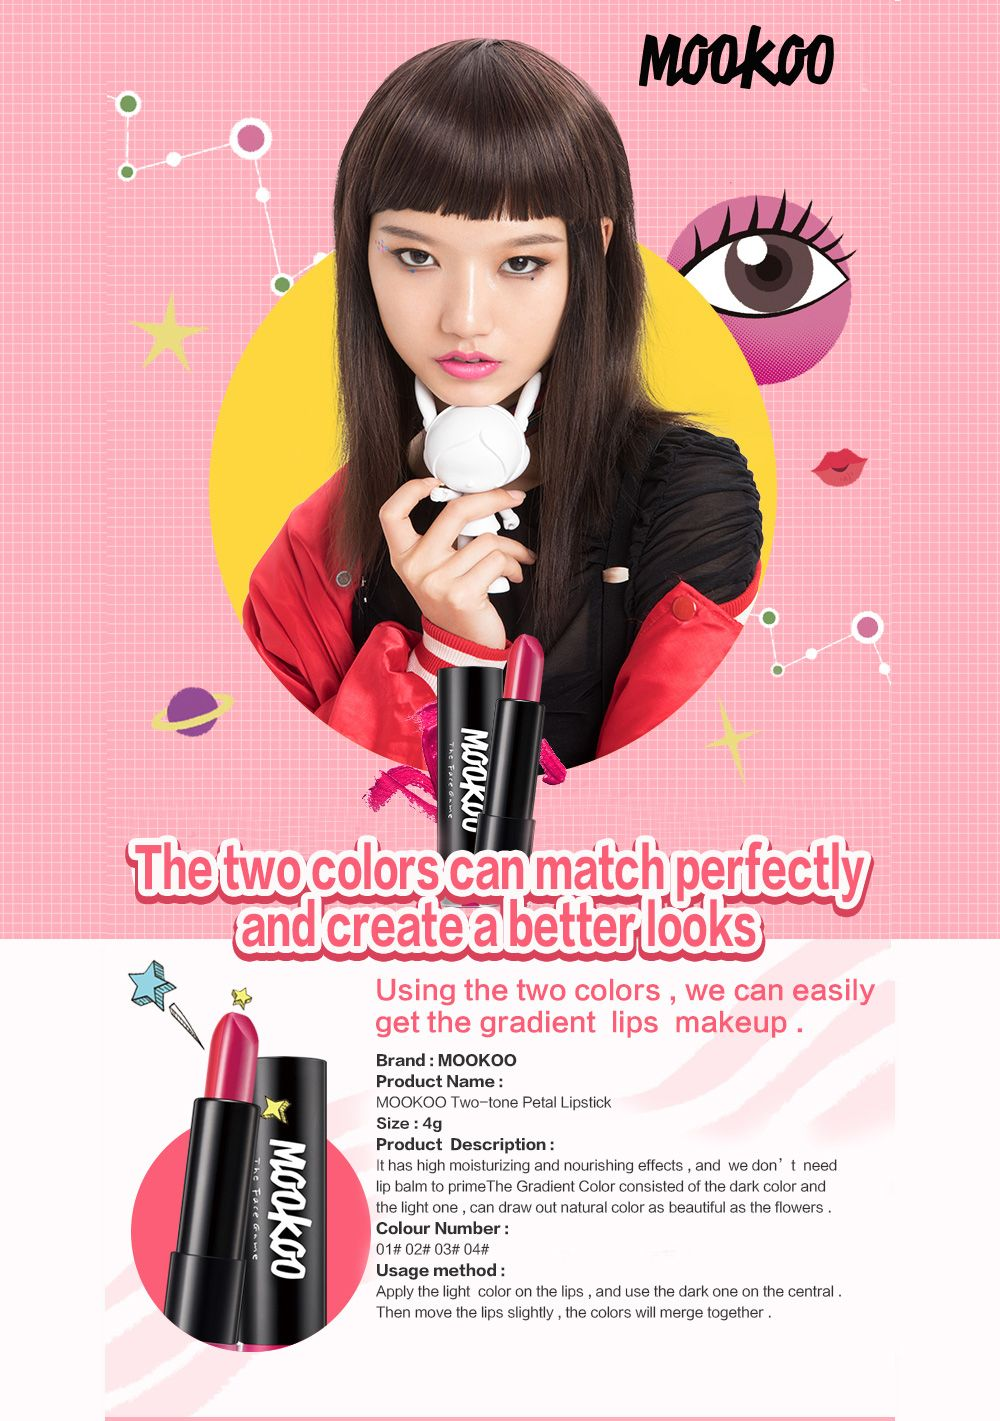 MOOKOO Two-Tone Petal Lipstick Long Lasting Moisturize and Not Easily To Fade